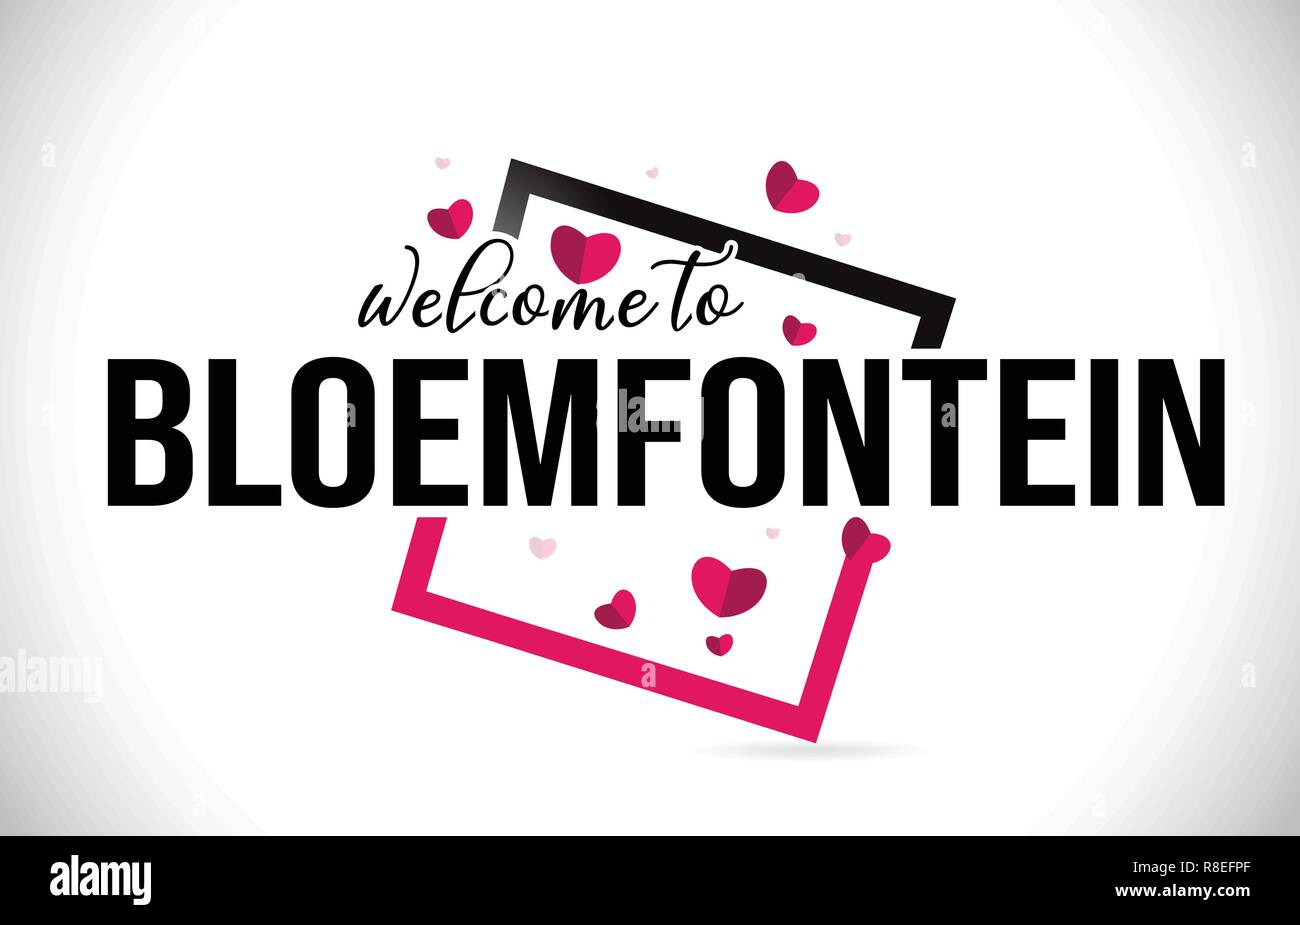 Bloemfontein Welcome To Word Text with Handwritten Font and  Red Hearts Square Design Illustration Vector. - Stock Image